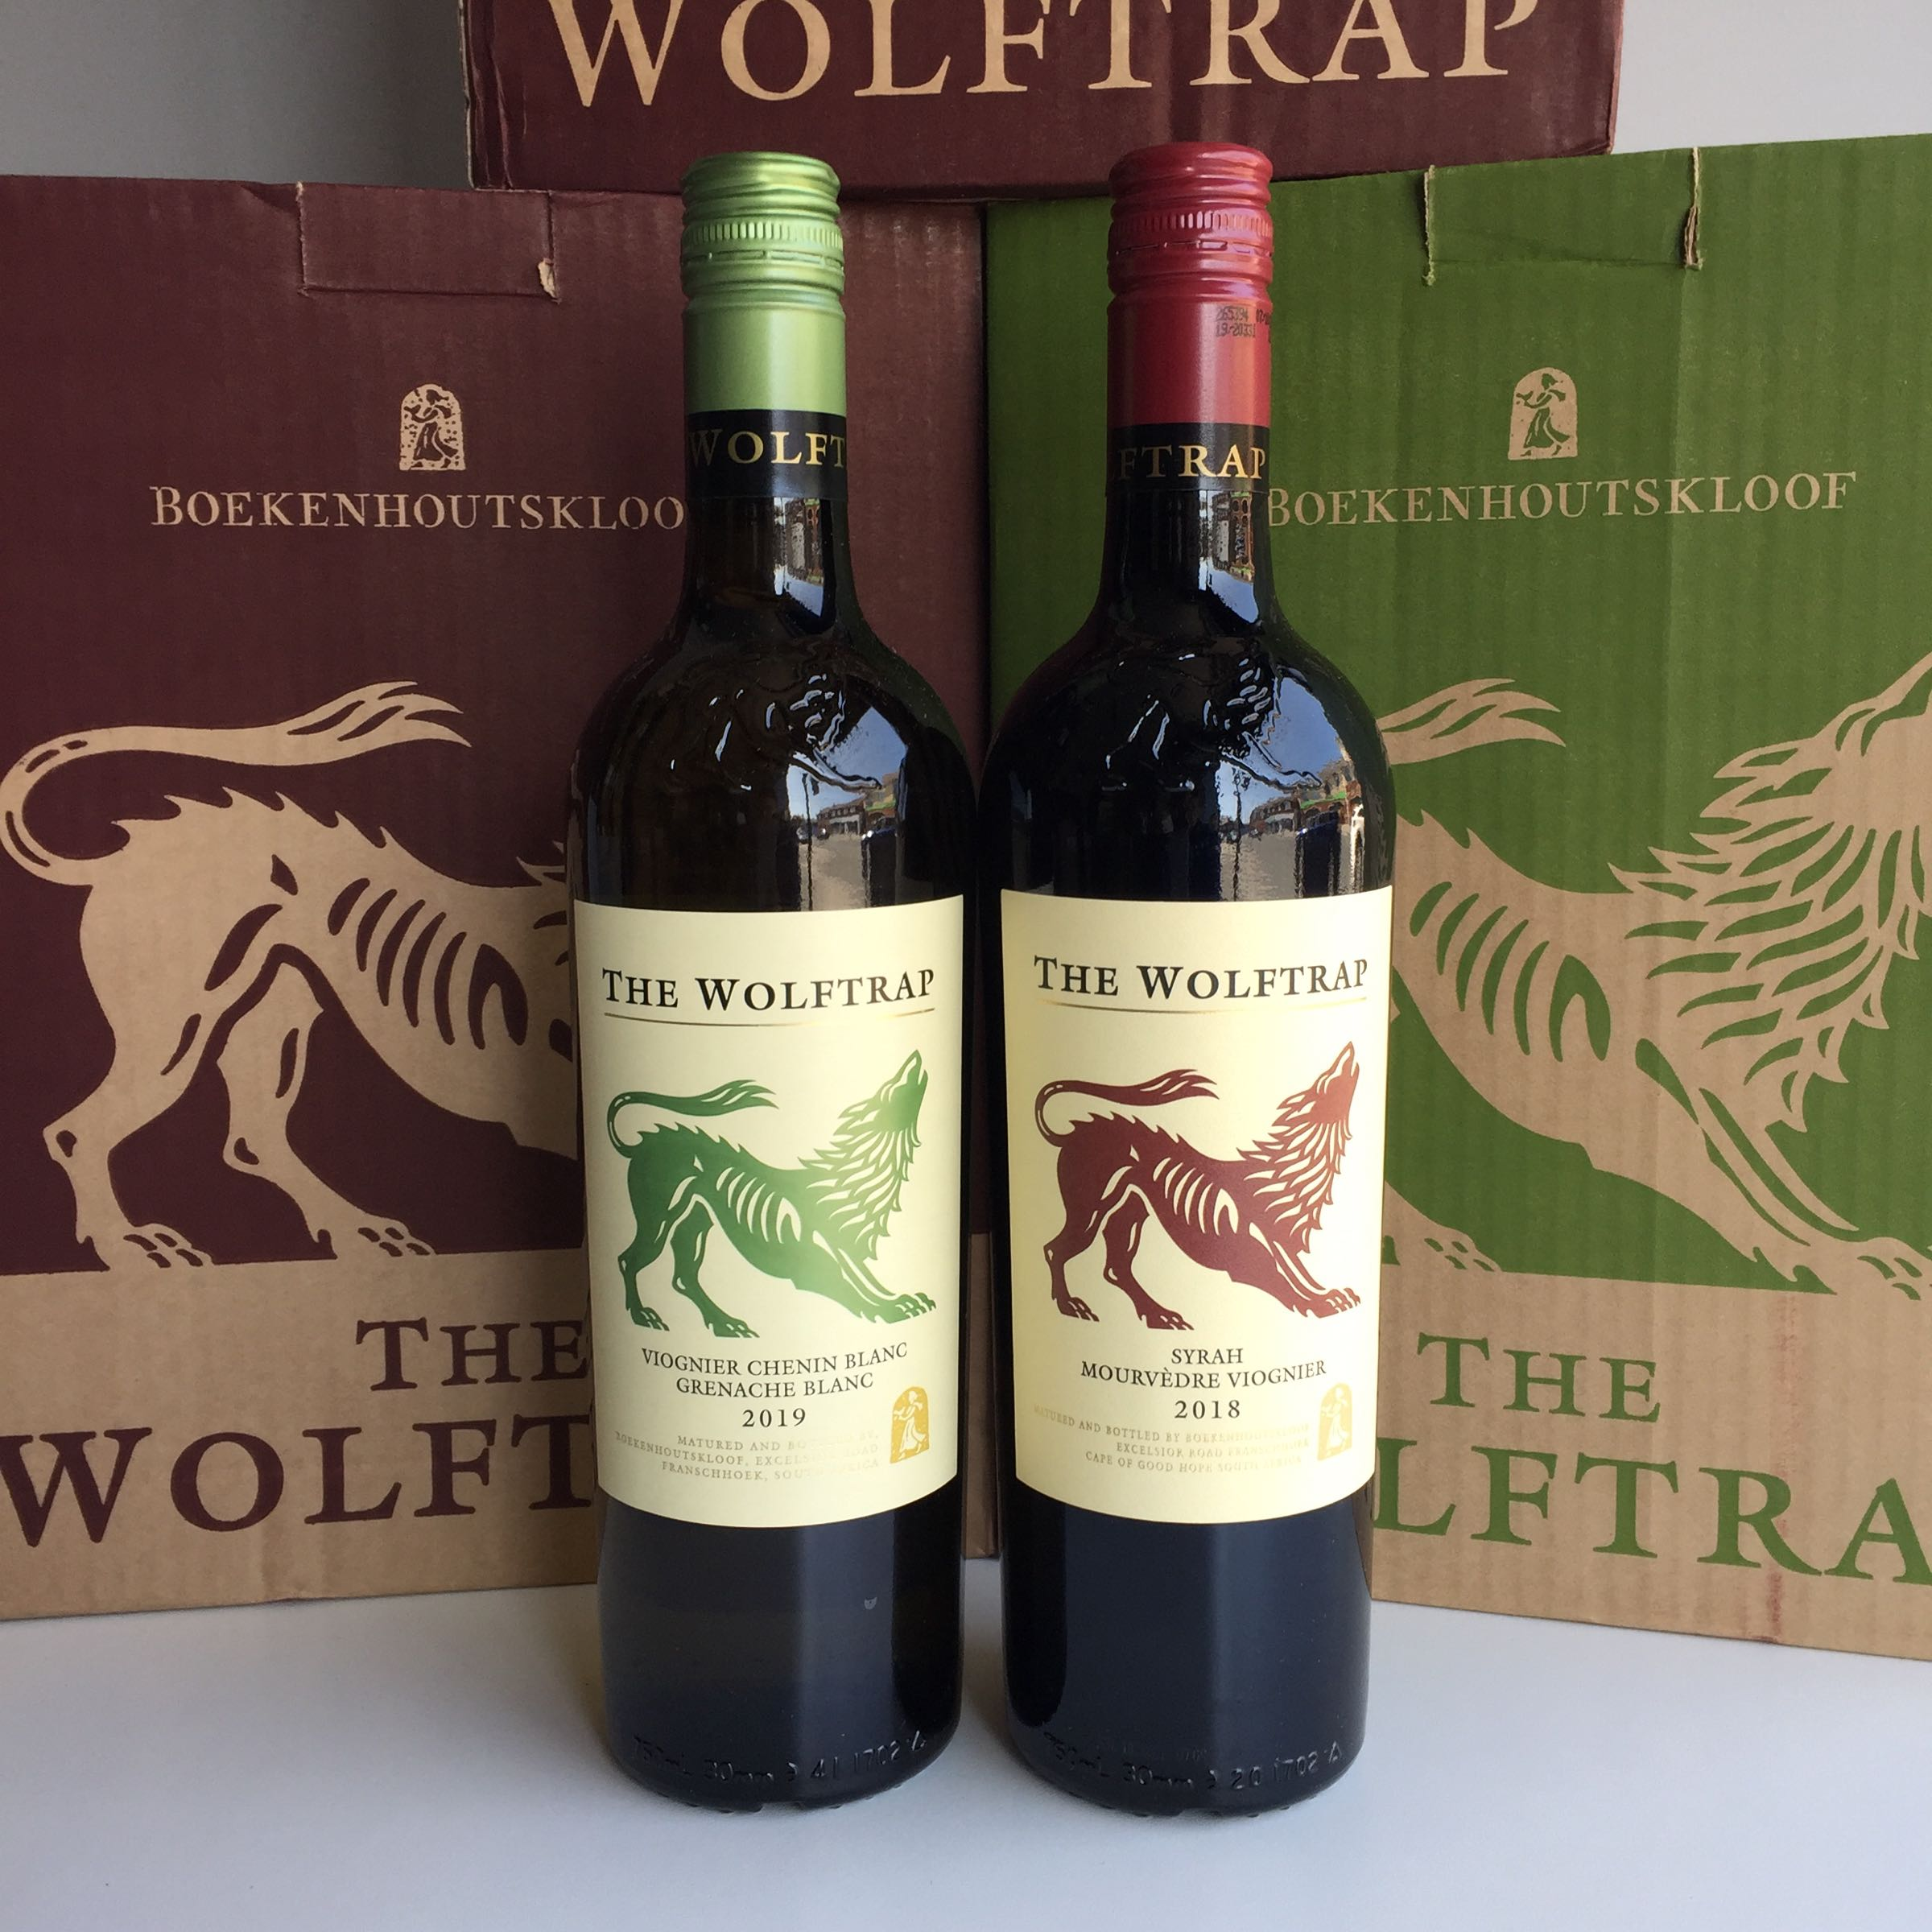 Boekenhoutskloof - The Wolf Trap mixed case deal